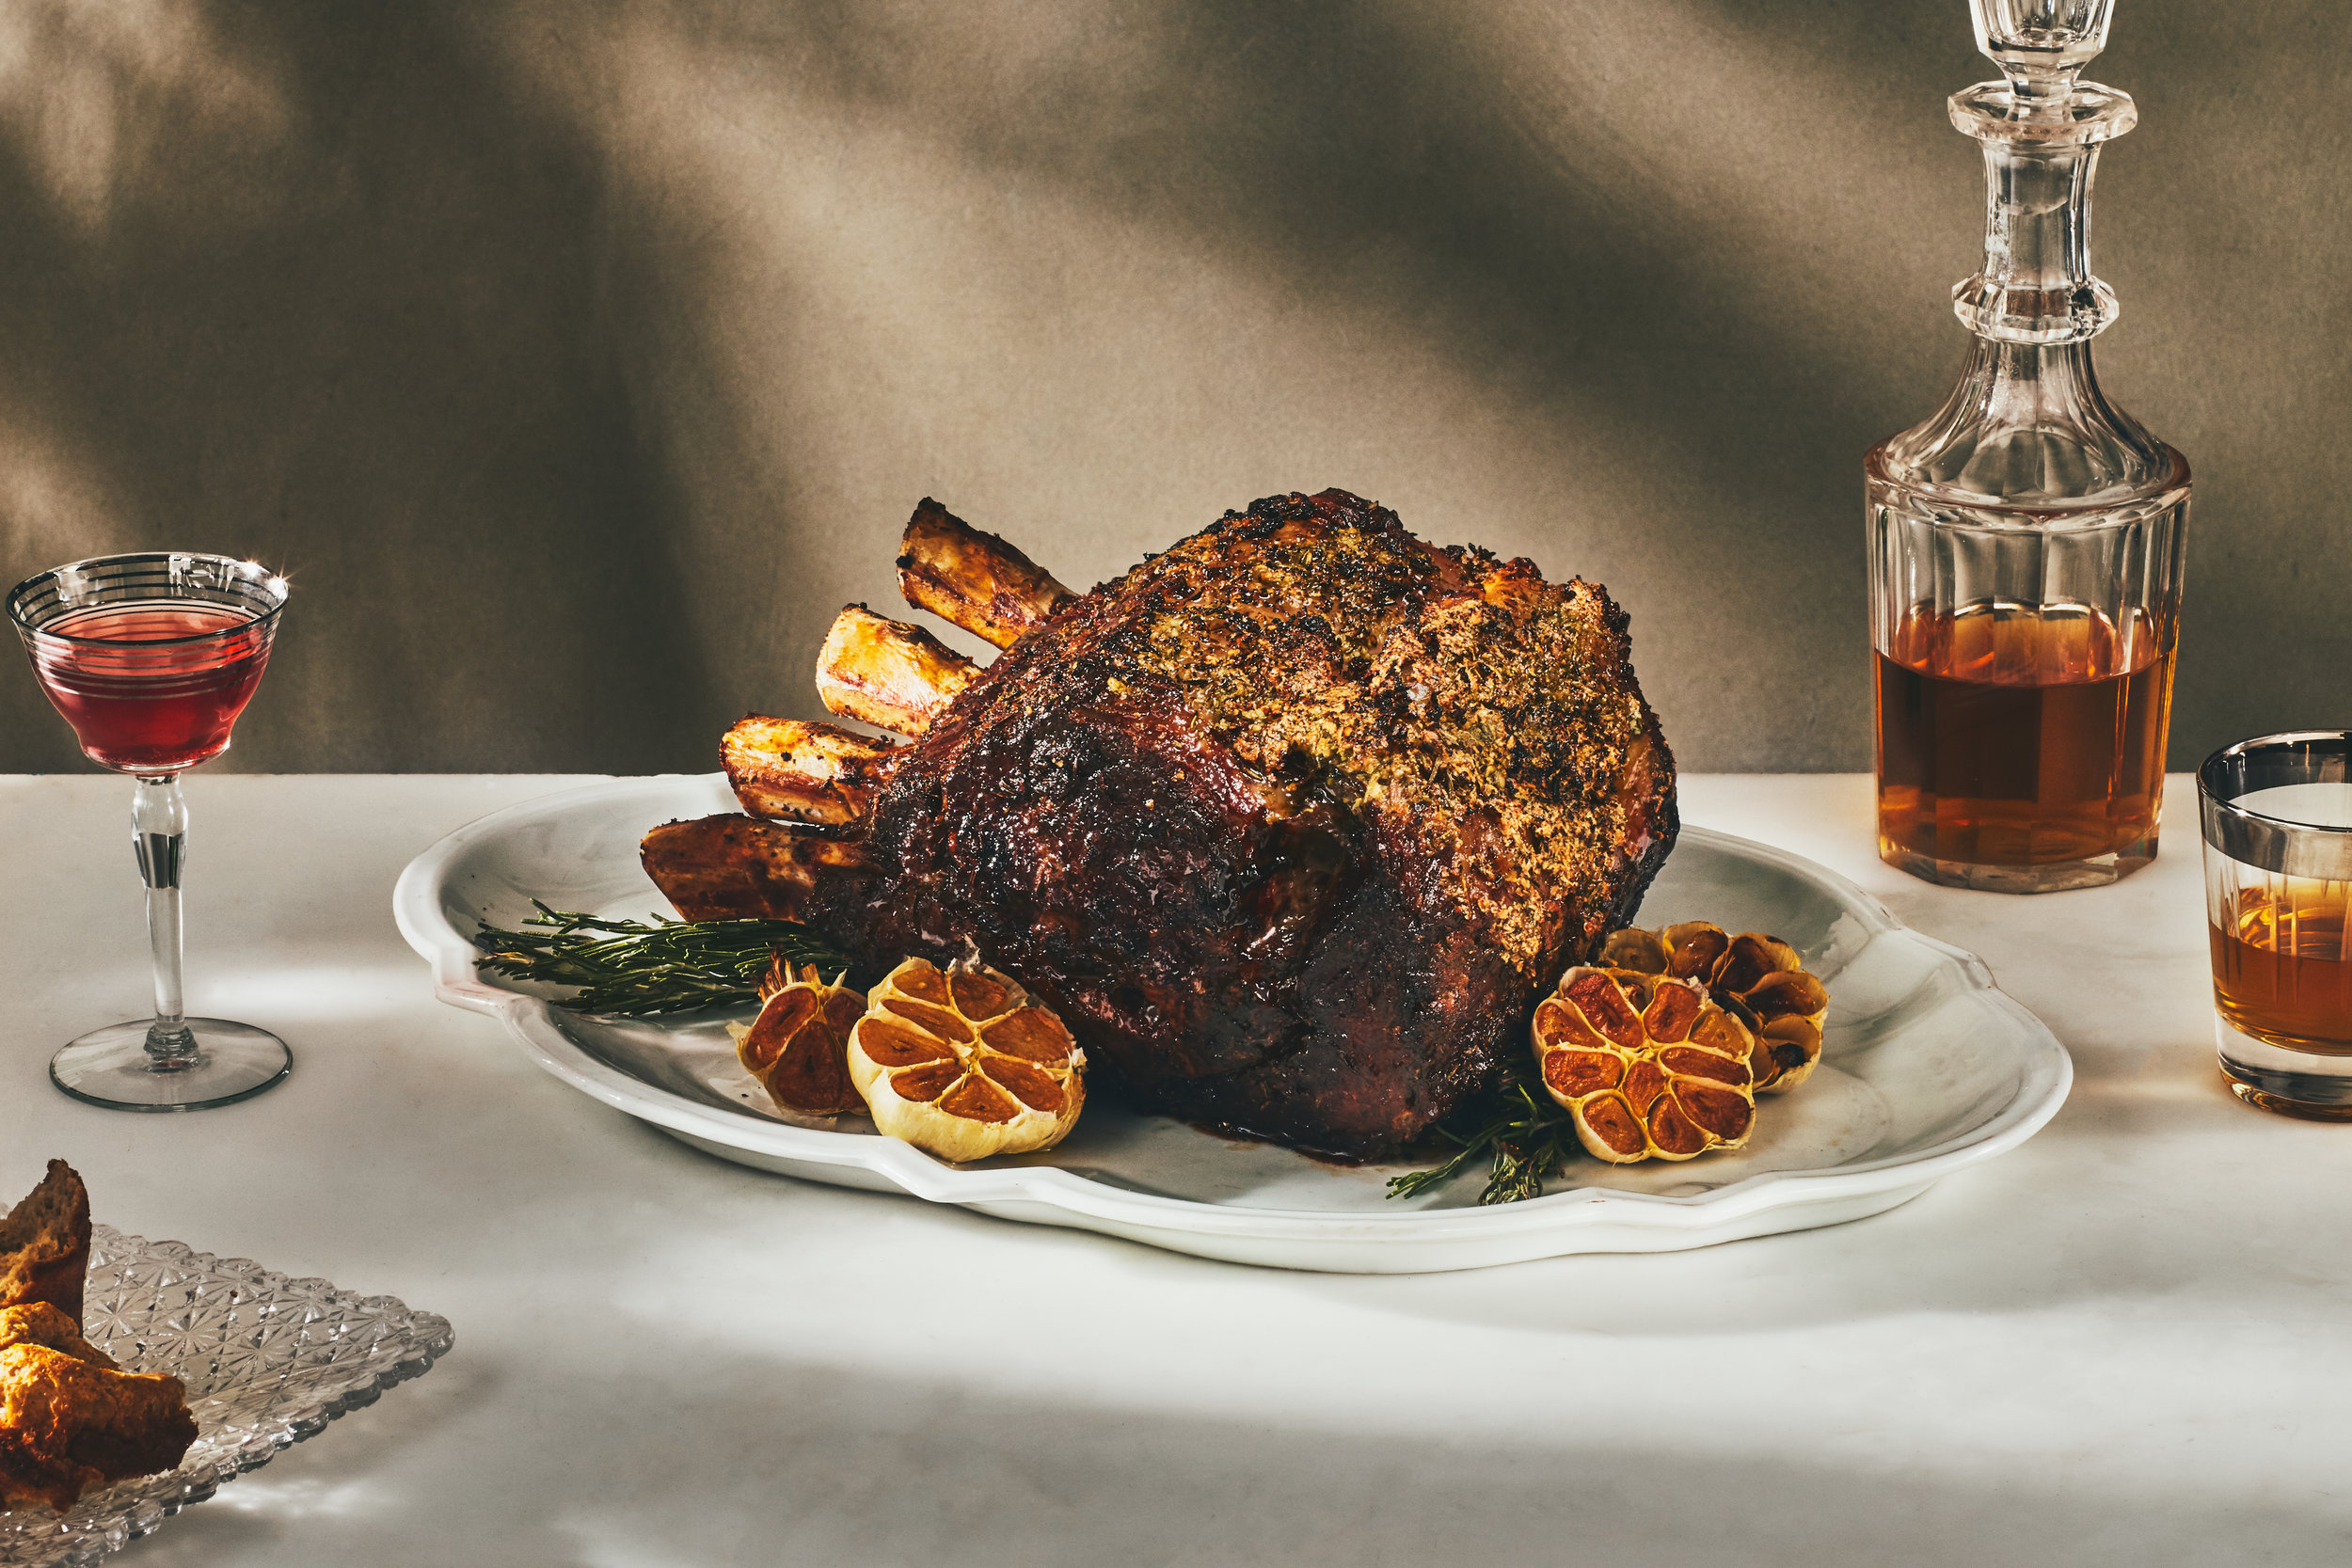 Gourmet-Christmas-Garlic-and-Rosemary-Crusted-Beef-Rib-Roast-recipe-14112018.jpg